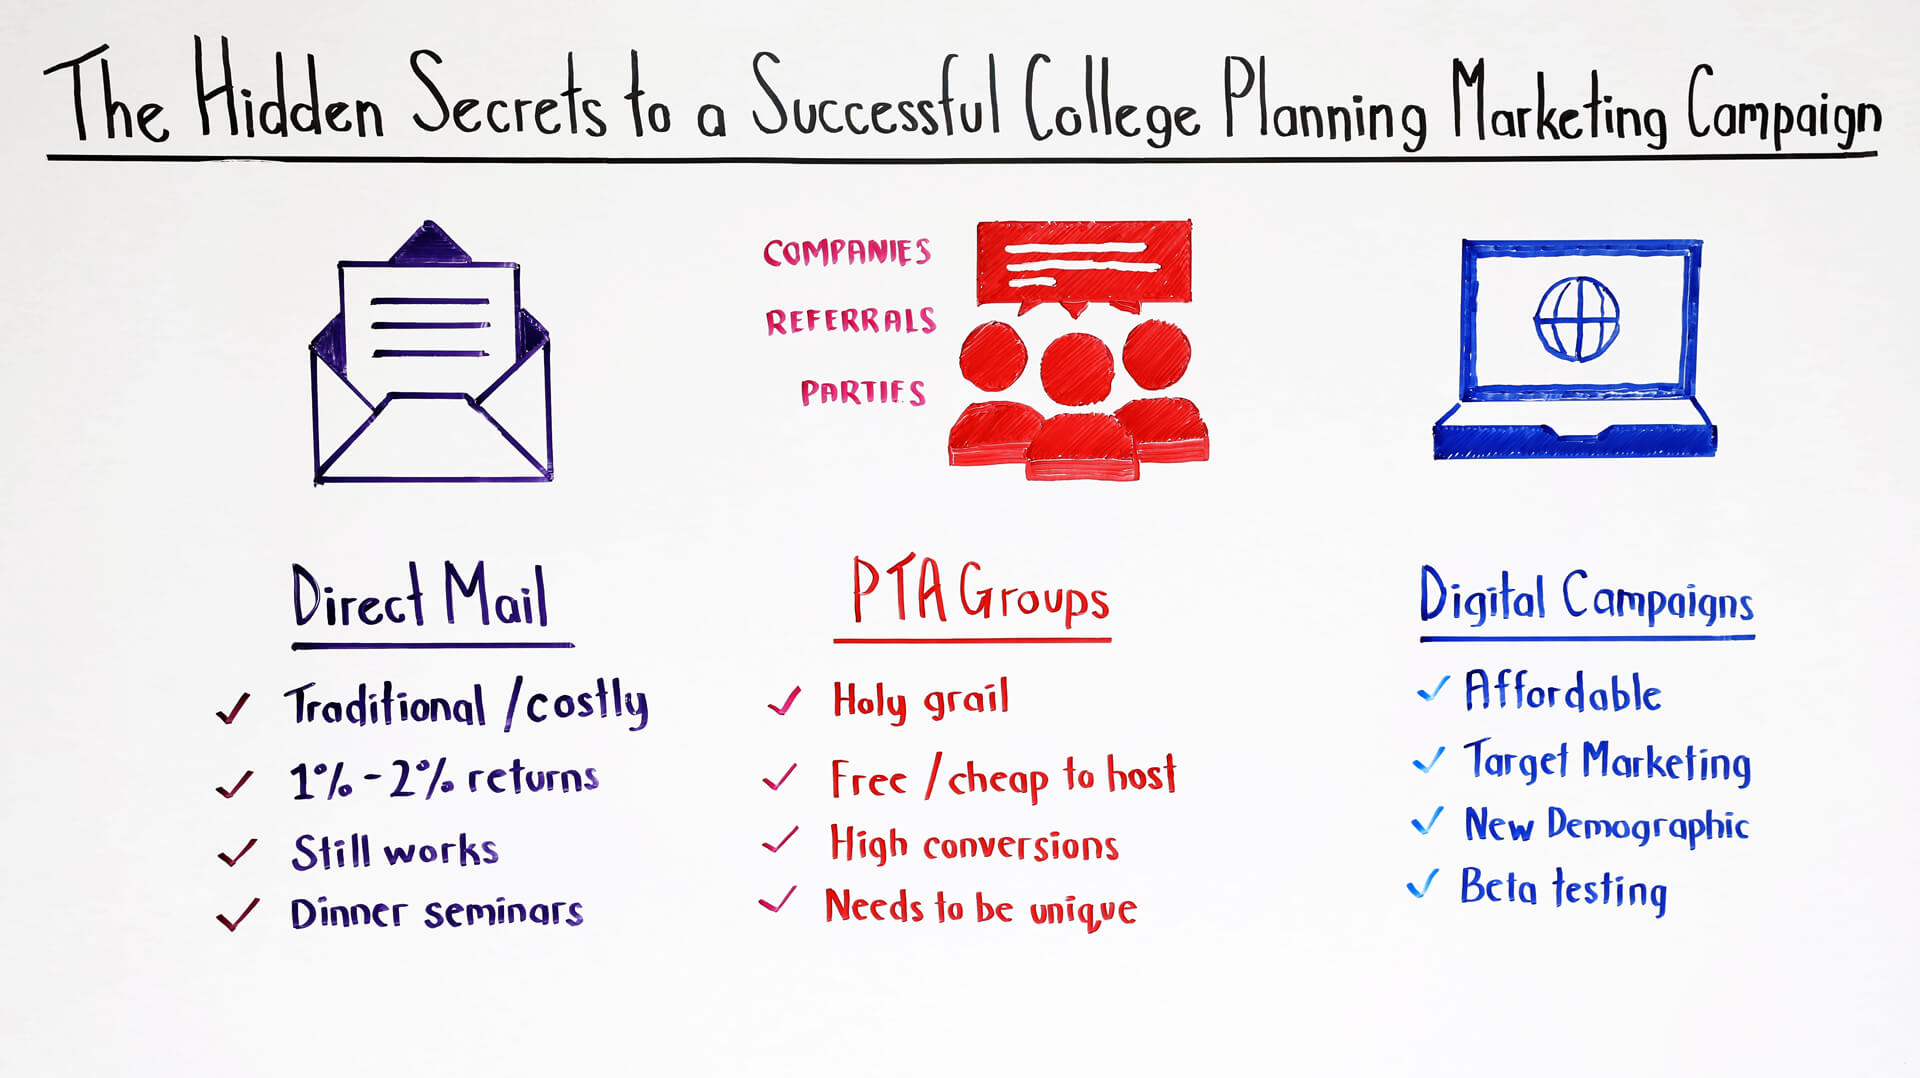 The Hidden Secrets to a Successful College Planning Marketing Campaign